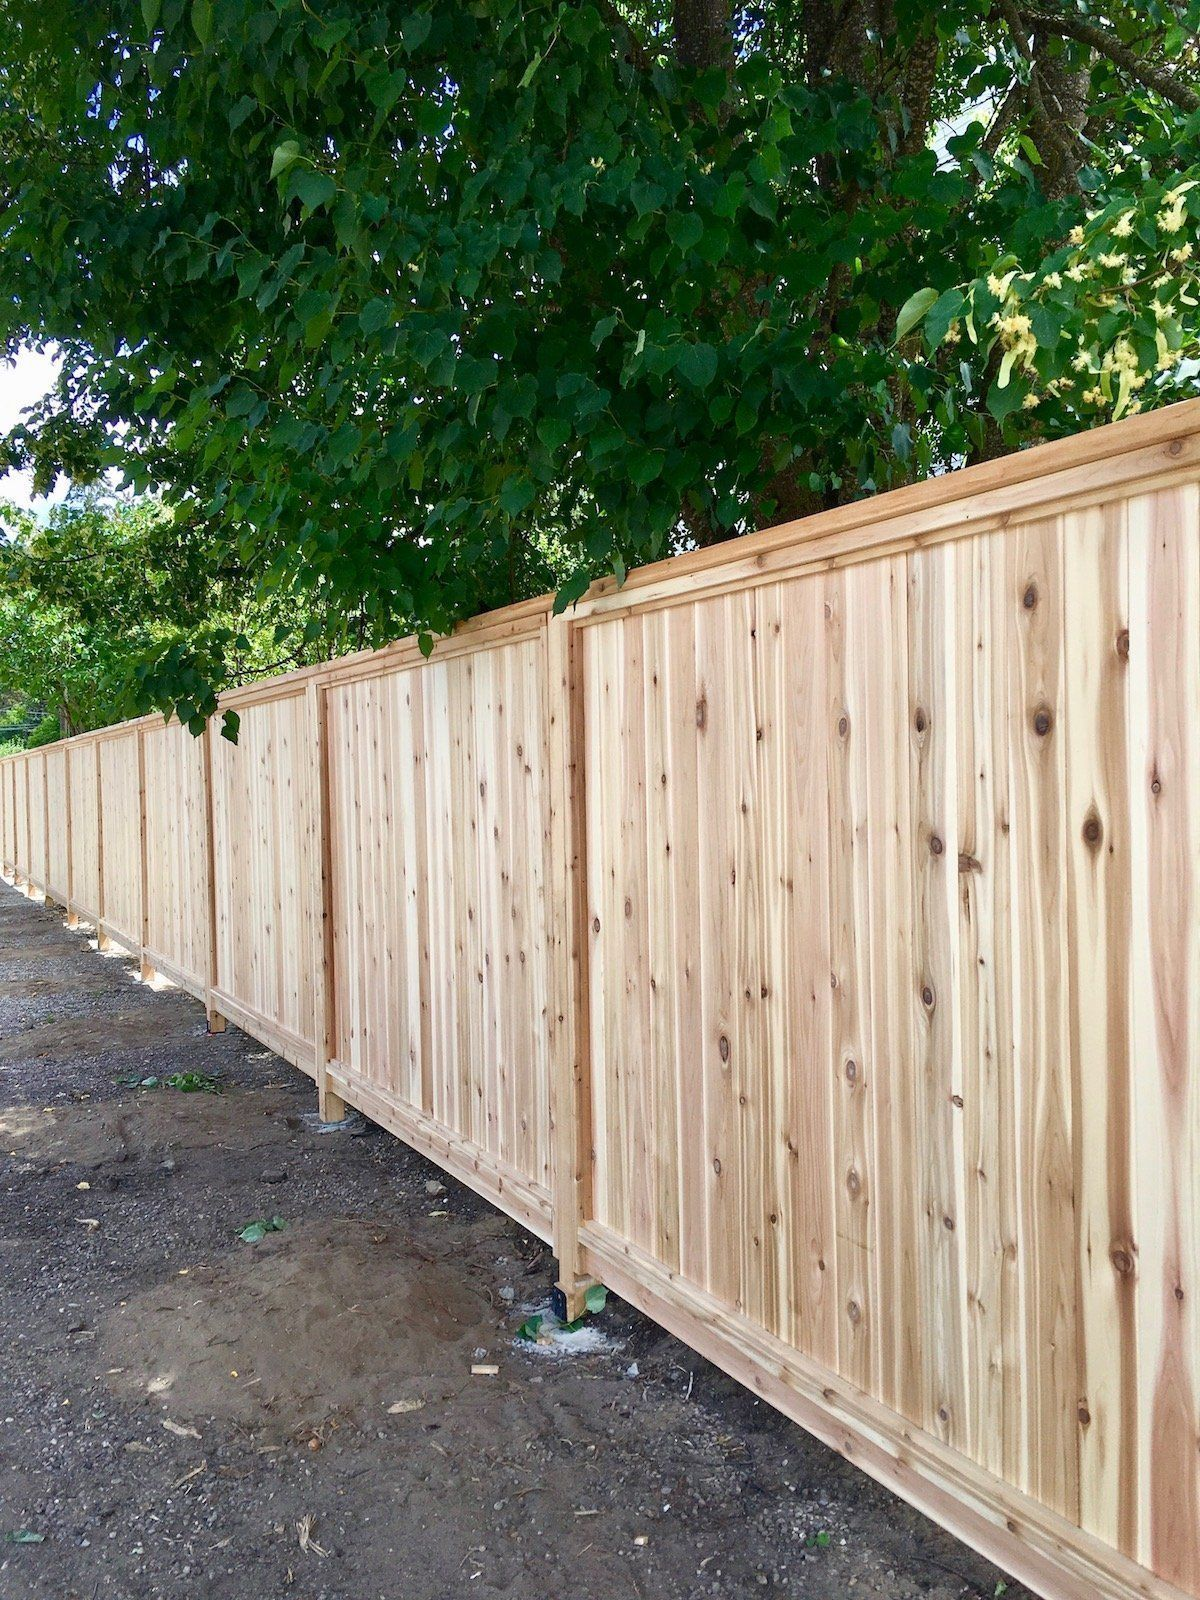 The Transformation Will Make You Smile A Wooden Privacy Fence